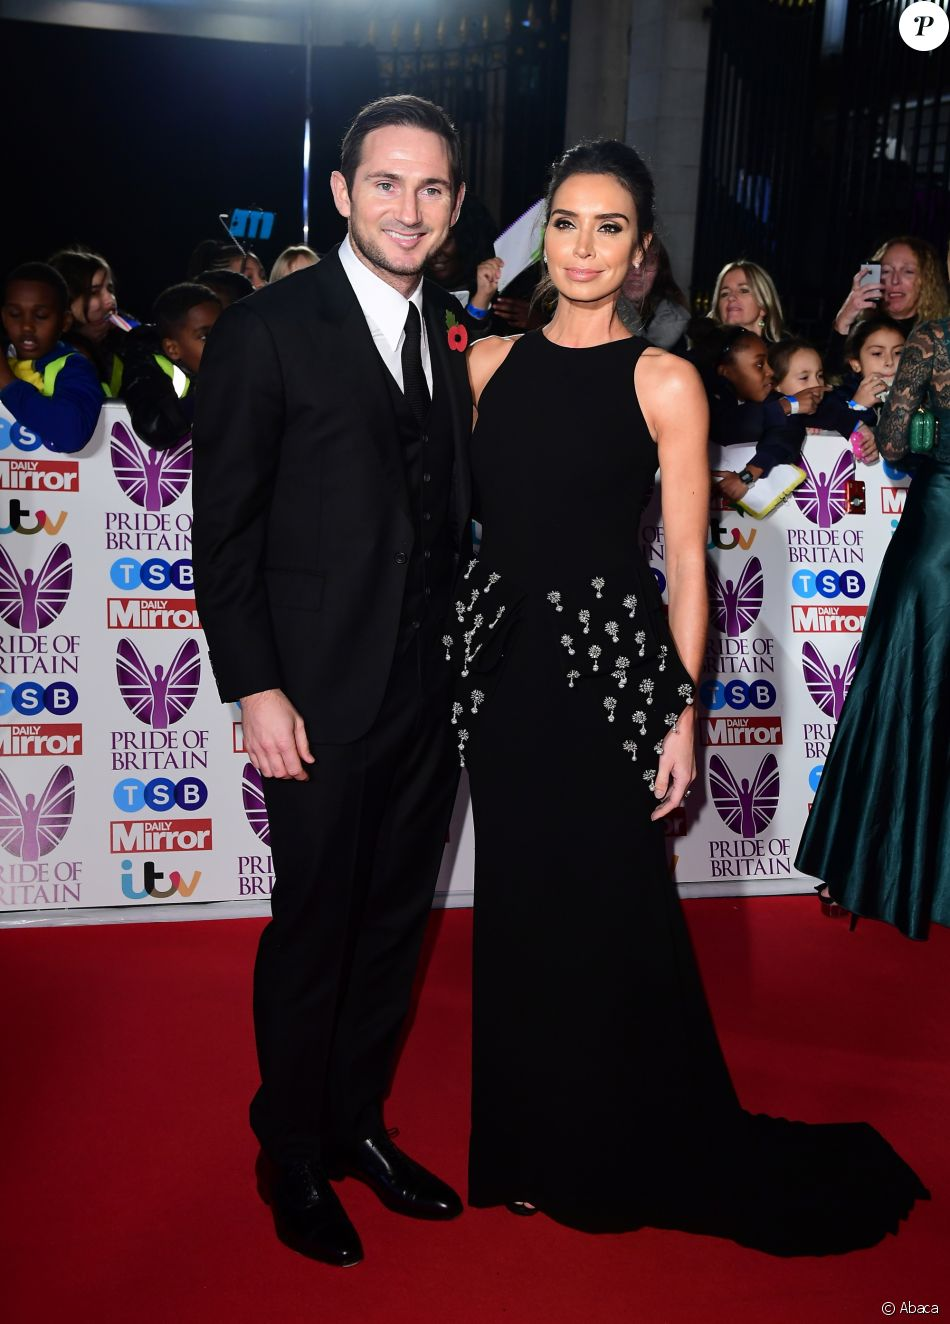 Frank Lampard et Christine Lampard à la cérémonie des Pride of Britain Awards 2017 à Londres le 30 octobre 2017